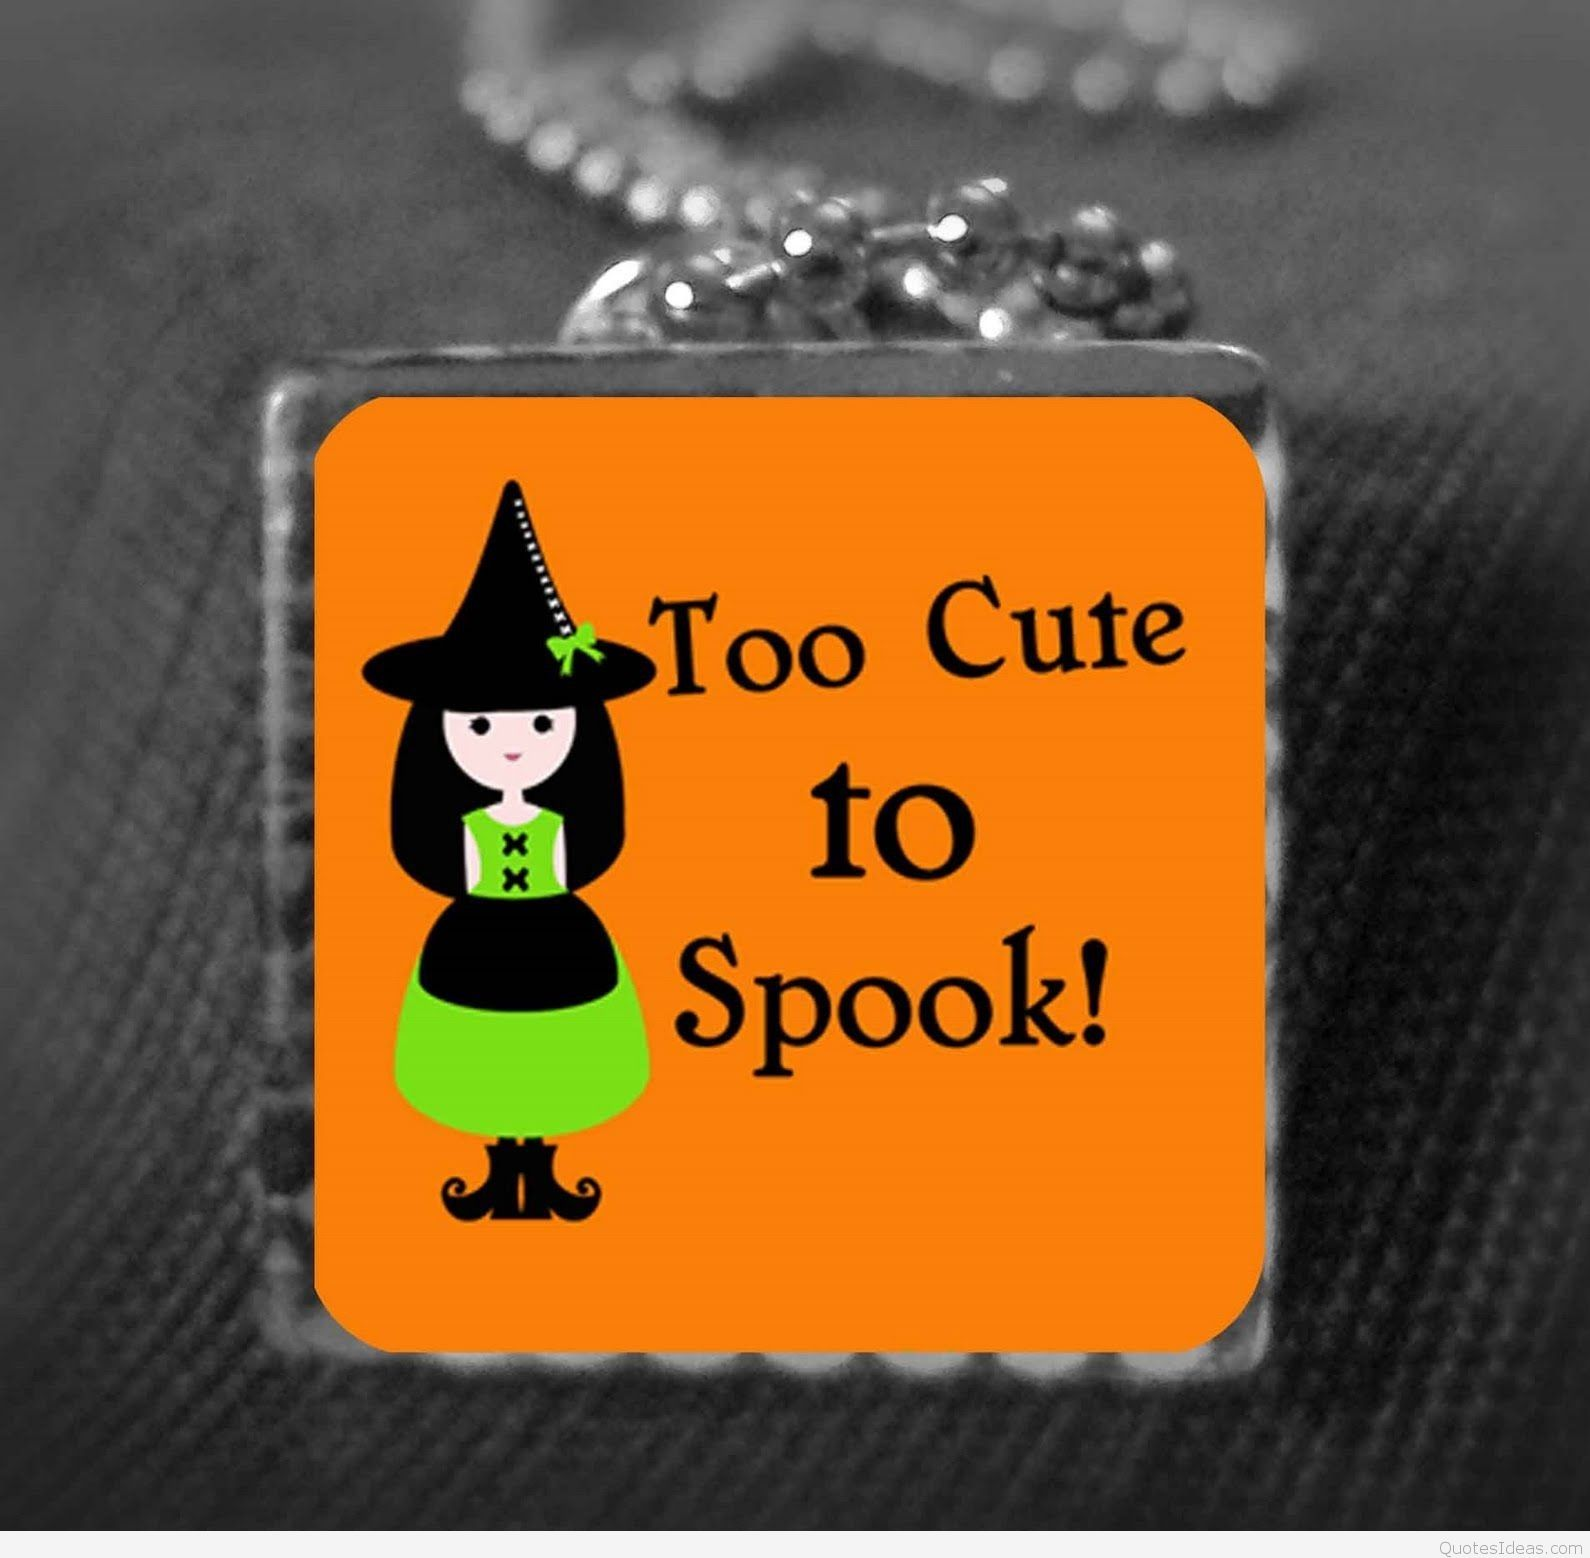 Happy Halloween Quotes And Sayings: Top 25 Happy Halloween Quotes And Sayings For Friends And